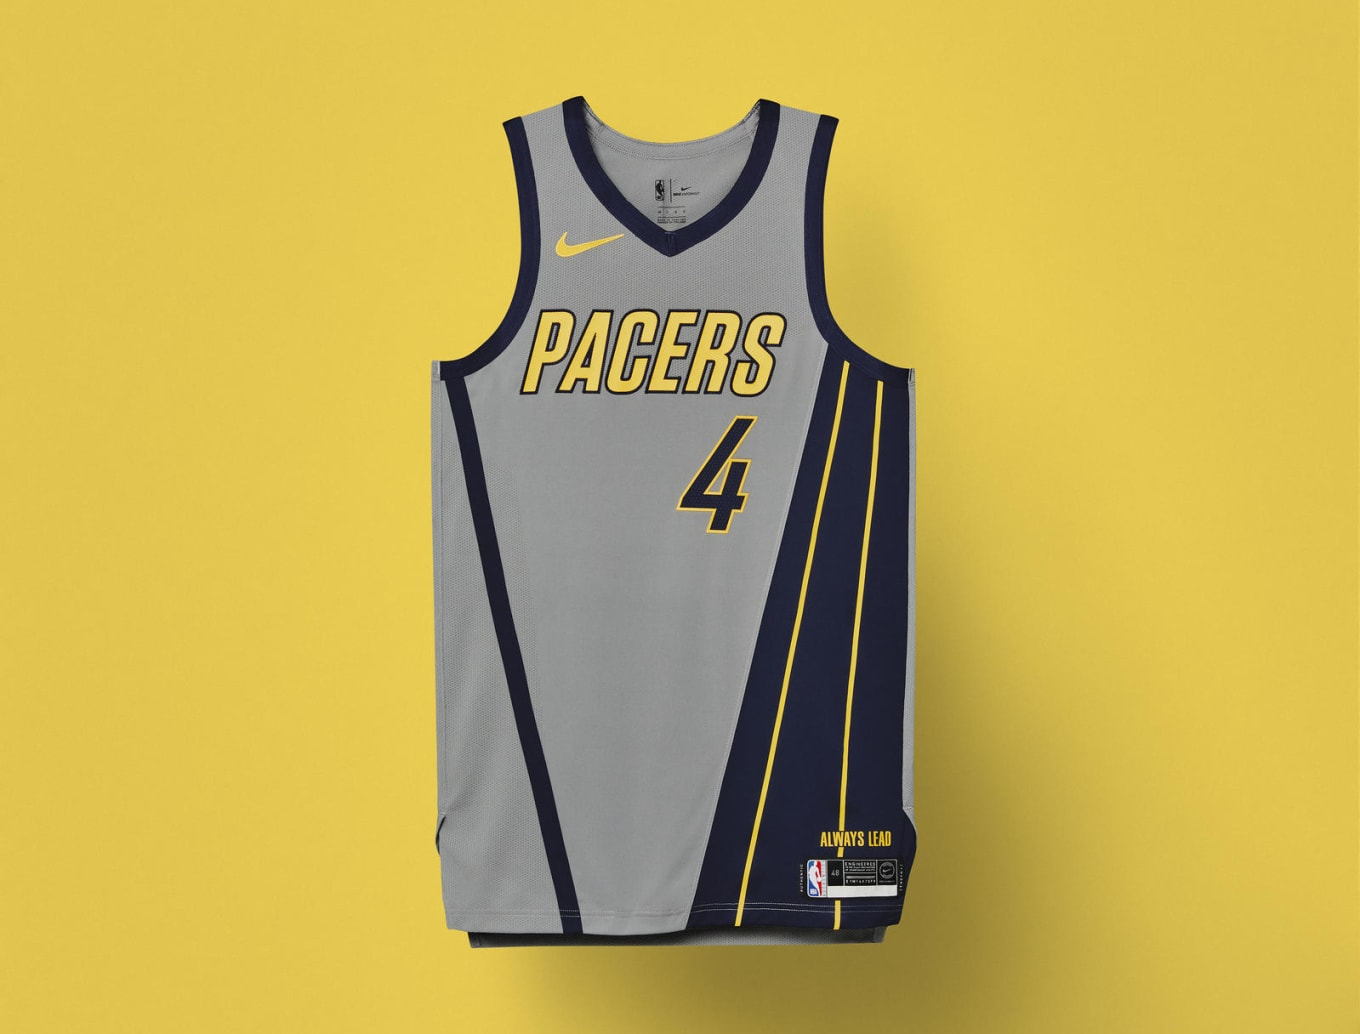 outlet store sale 37490 63041 Nike 2018-19 NBA City Edition Jerseys | Sole Collector